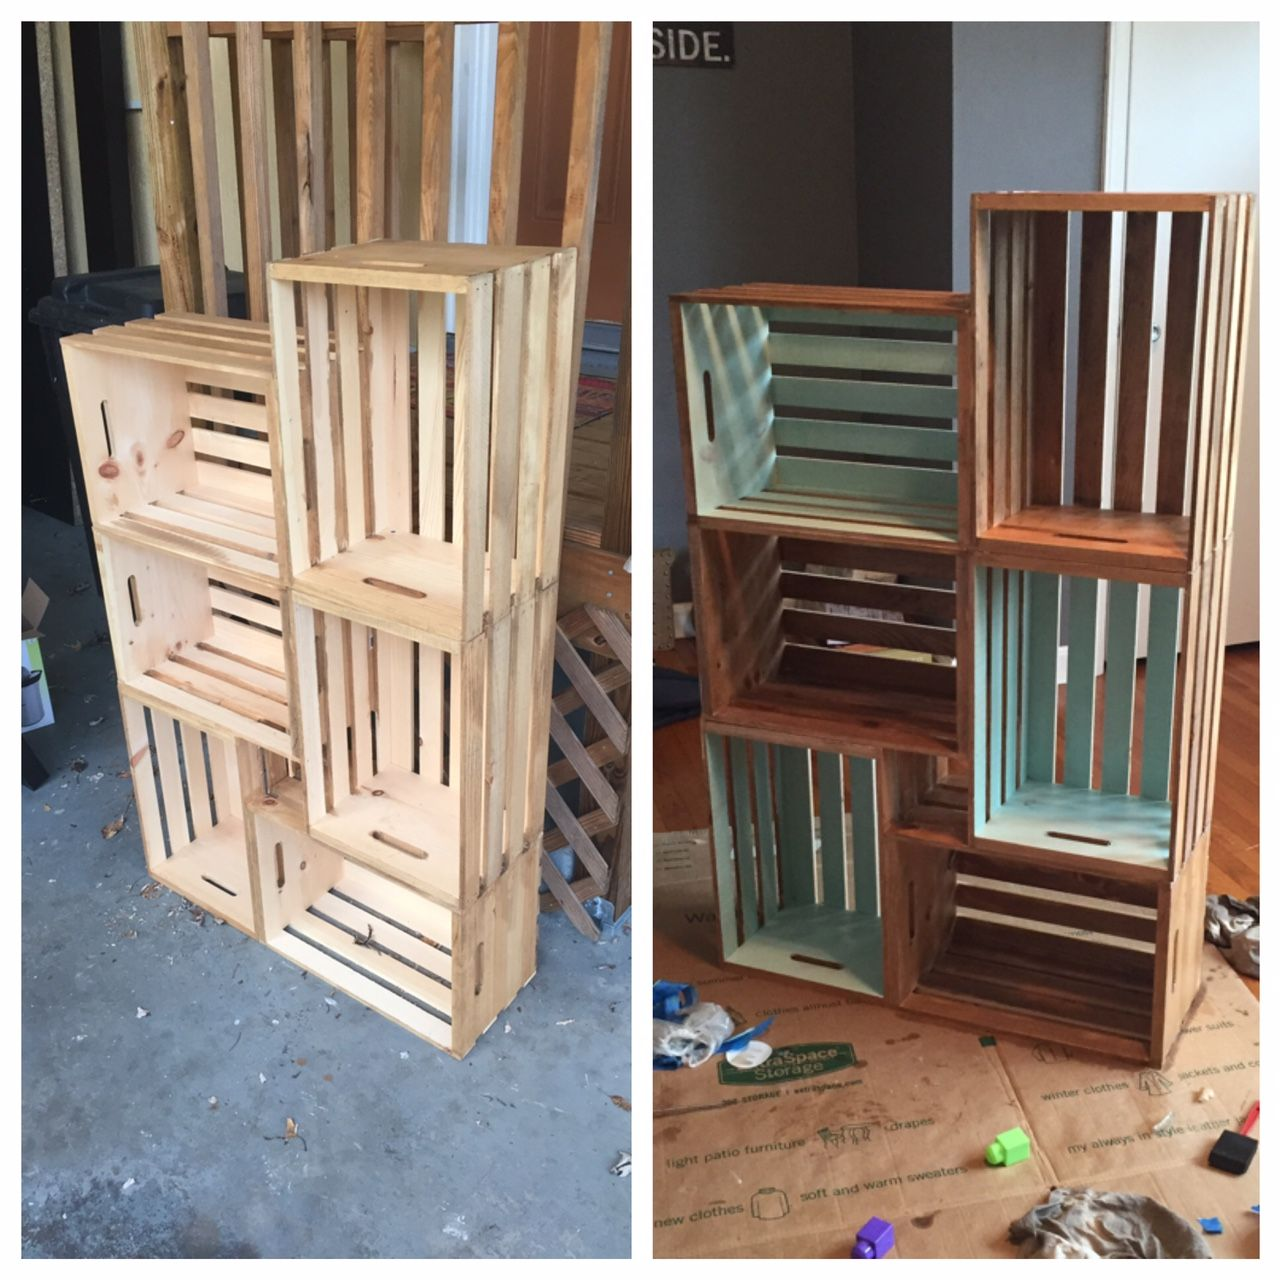 6 Wooden Crates From Walmart Stain And Chalk Paint Crate